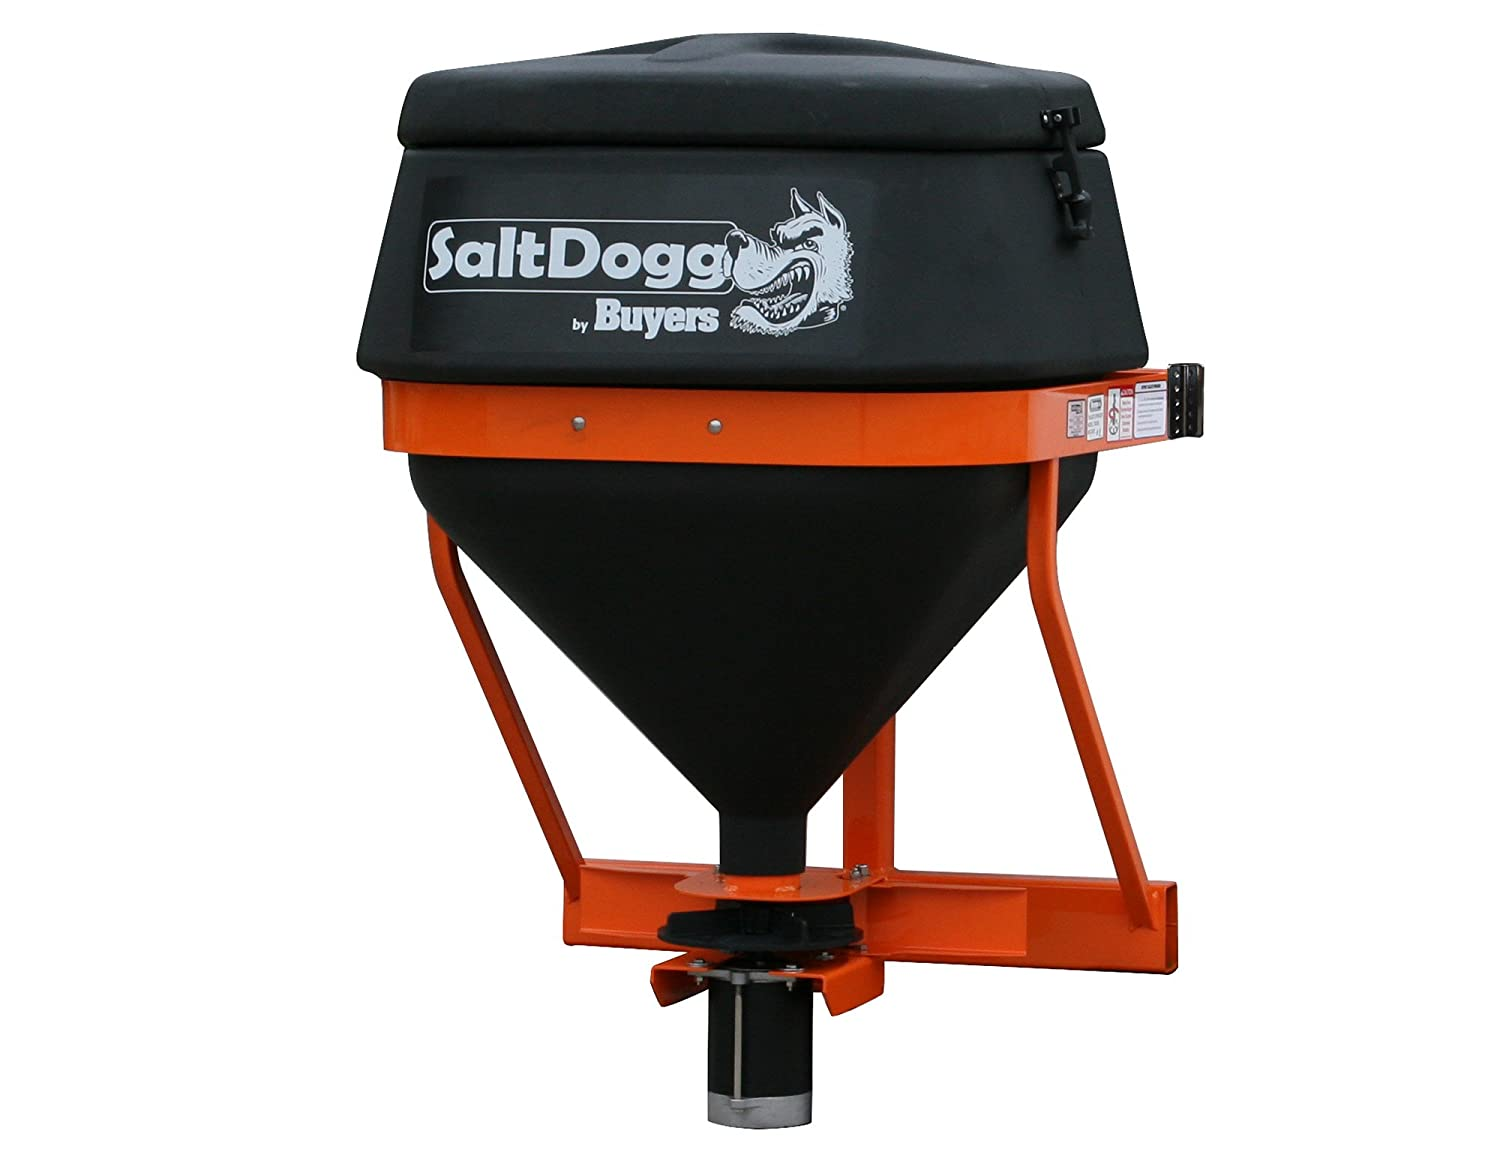 SaltDogg 8-Cubic-Feet/602-Pound Capacity Salt Spreader with Heavy Duty Motor and Speed Control TGS01B